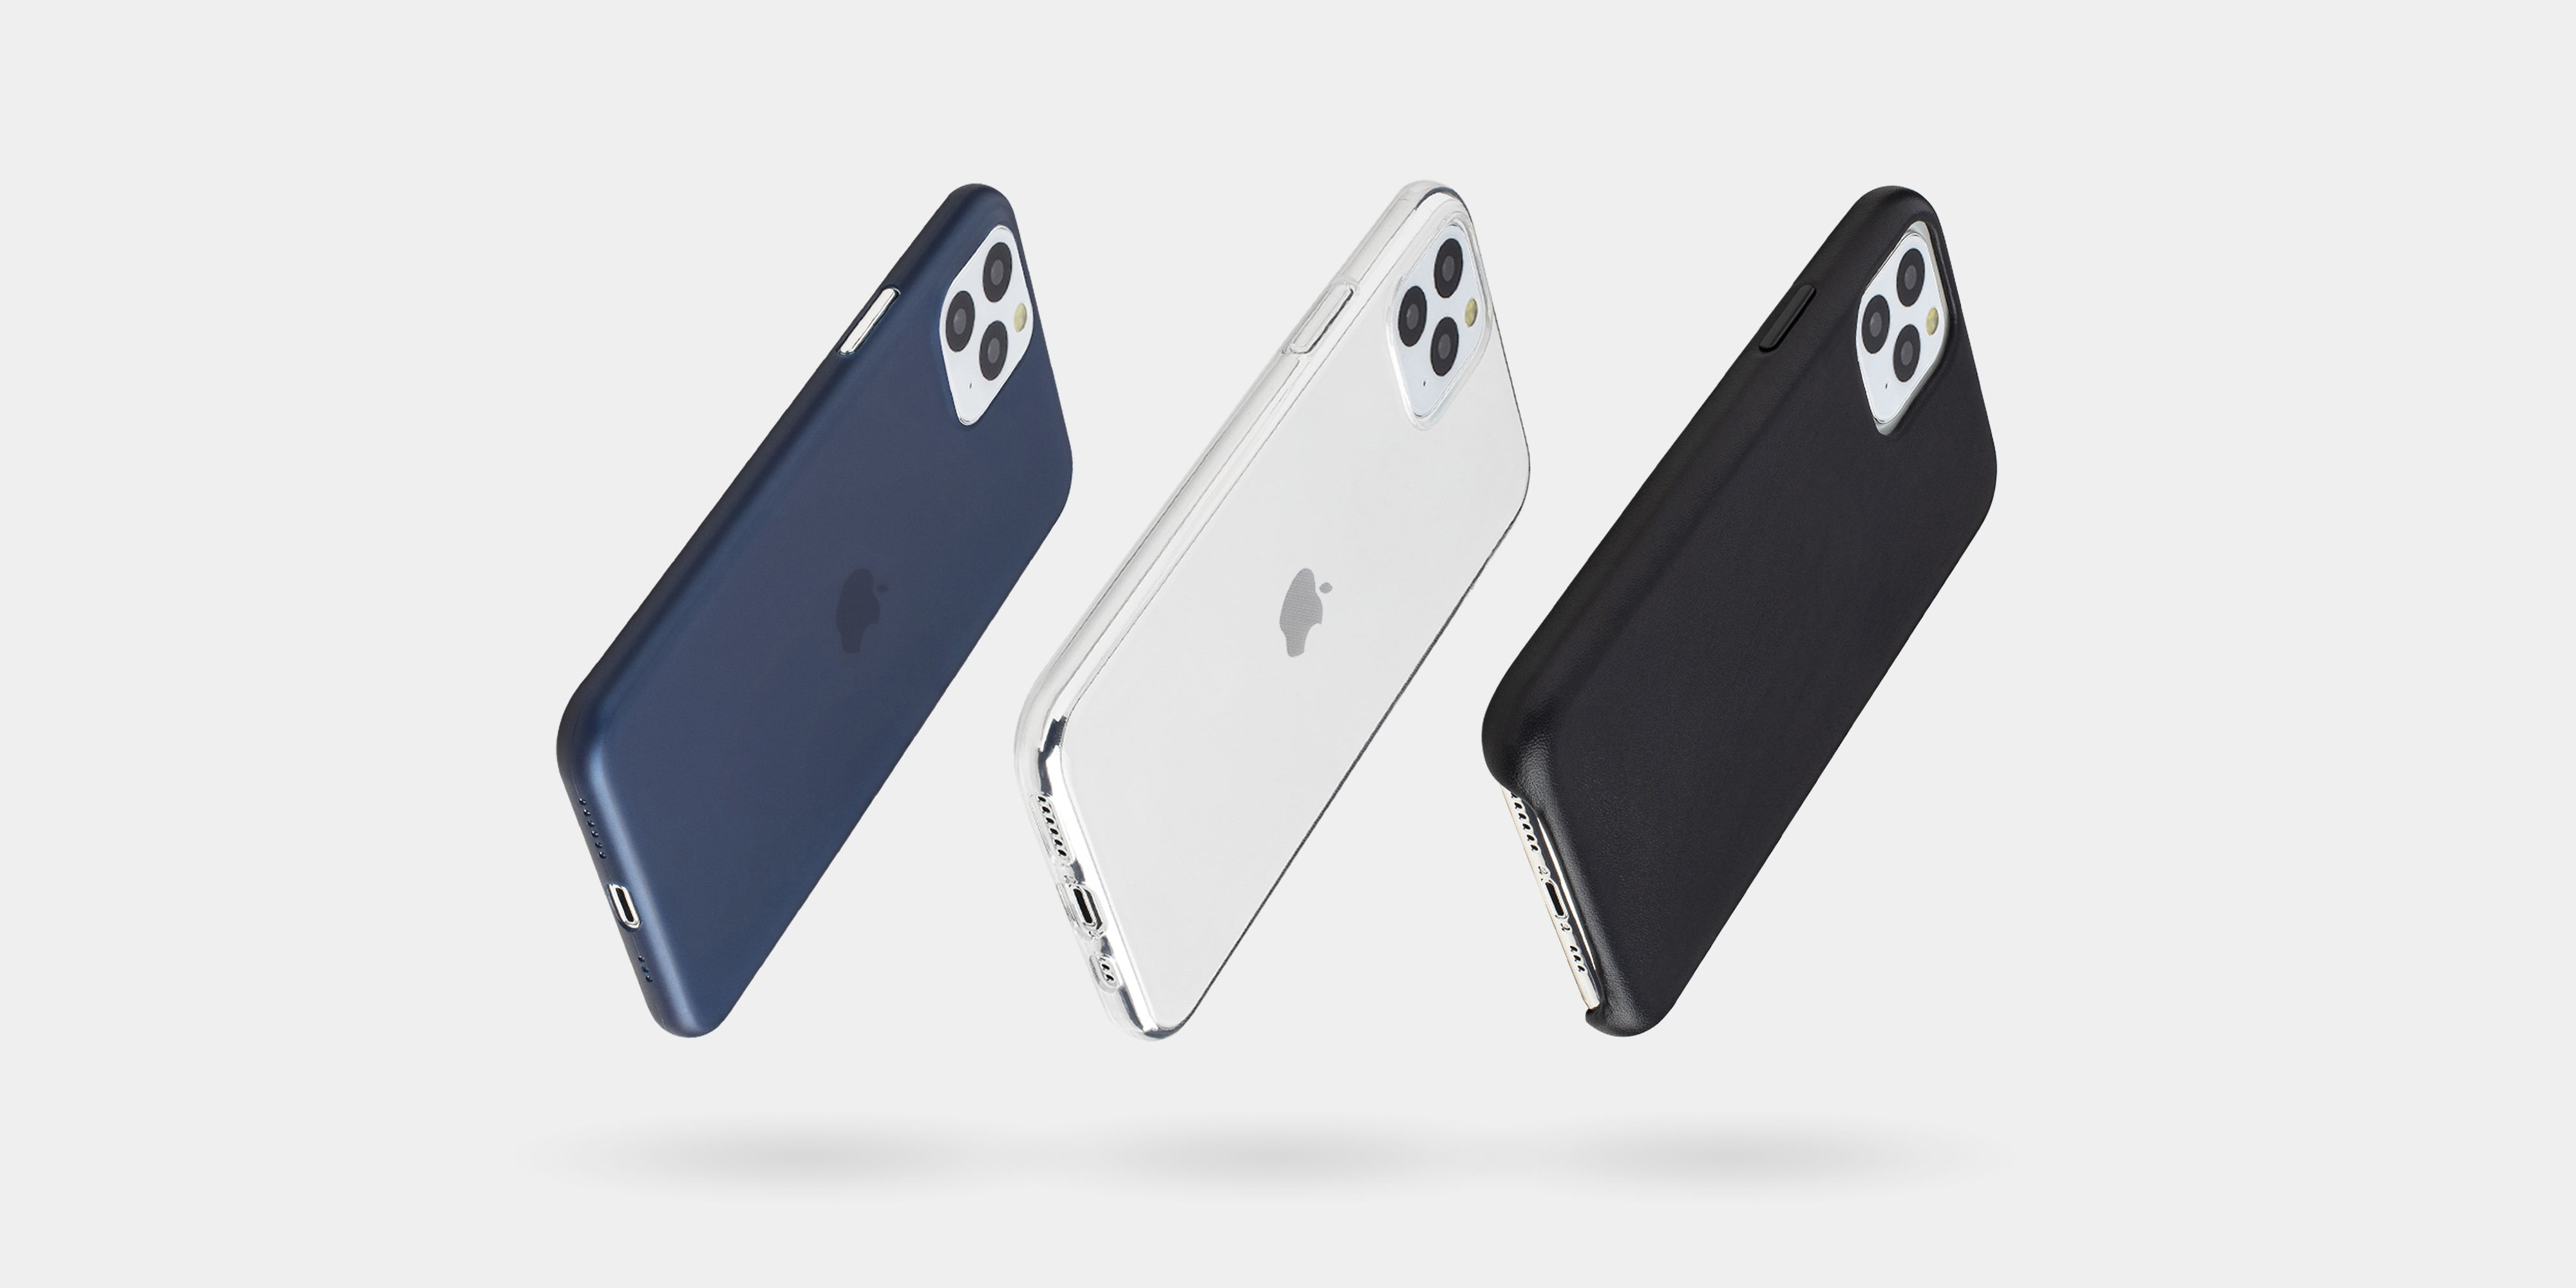 Totallee super-thin iPhone 11 cases come in three styles: matte, transparent and leather.